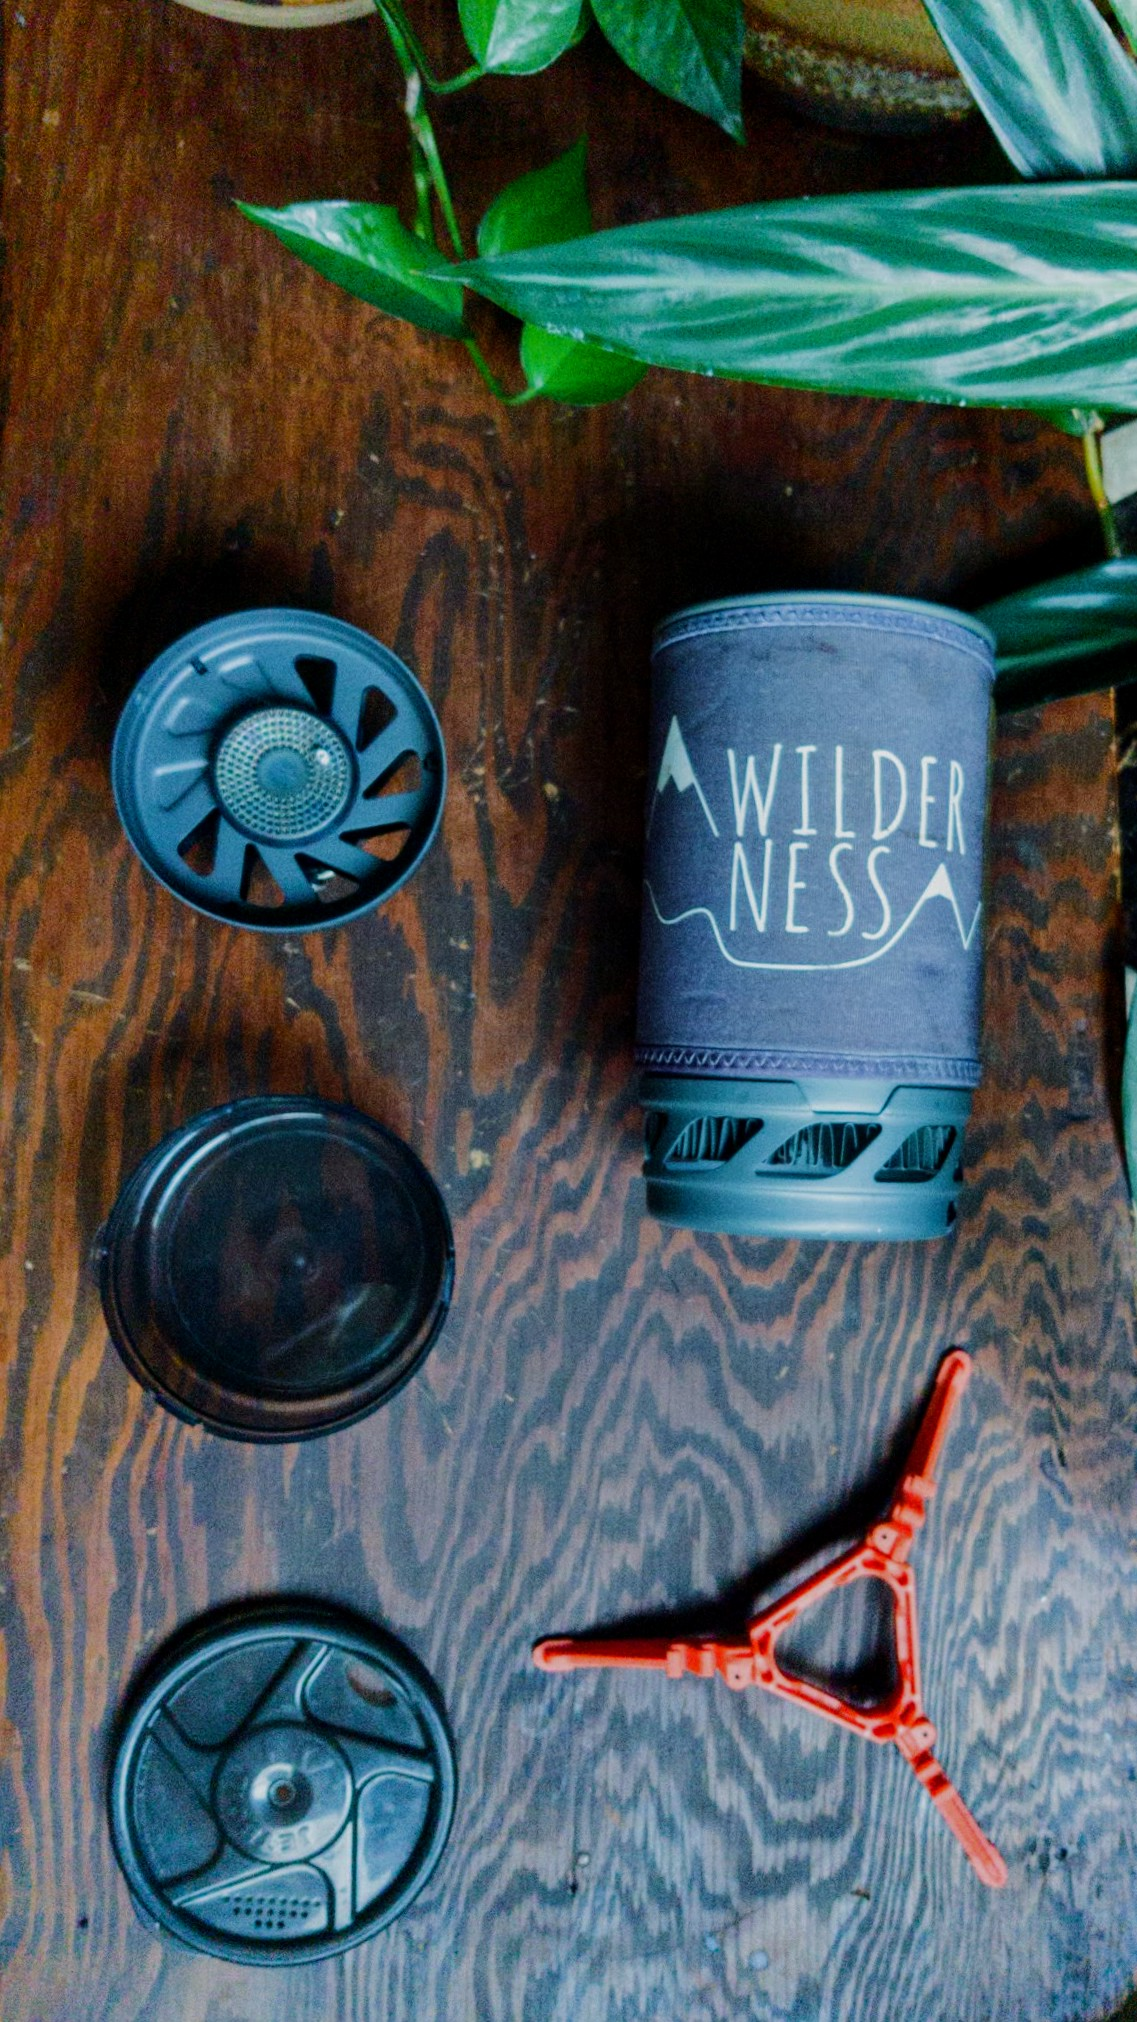 I love making a quick cup of coffee in my jetboil, either at the truck or on the trail.